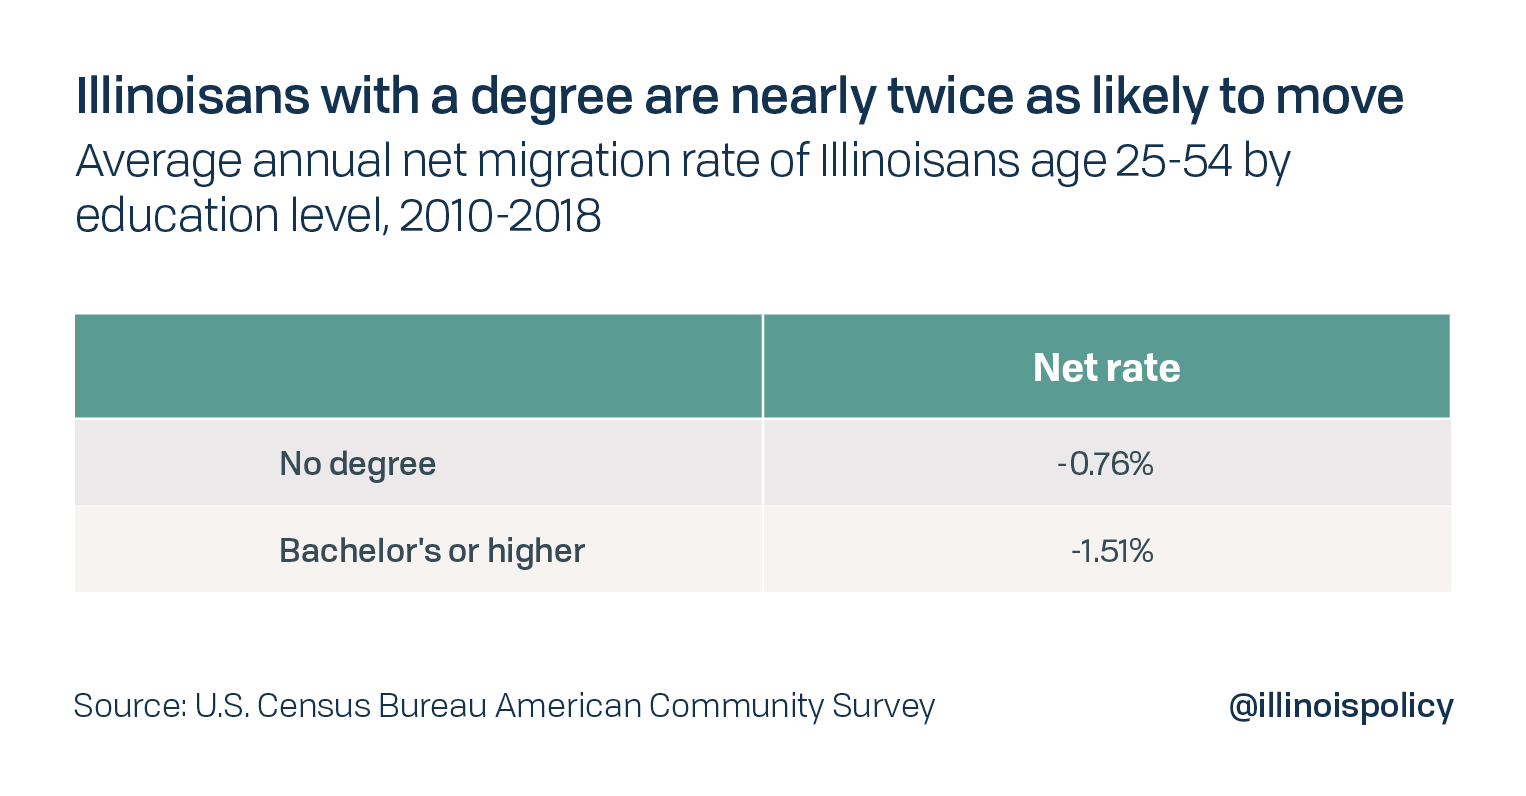 Illinoisans with a degree are nearly twice as likely to move